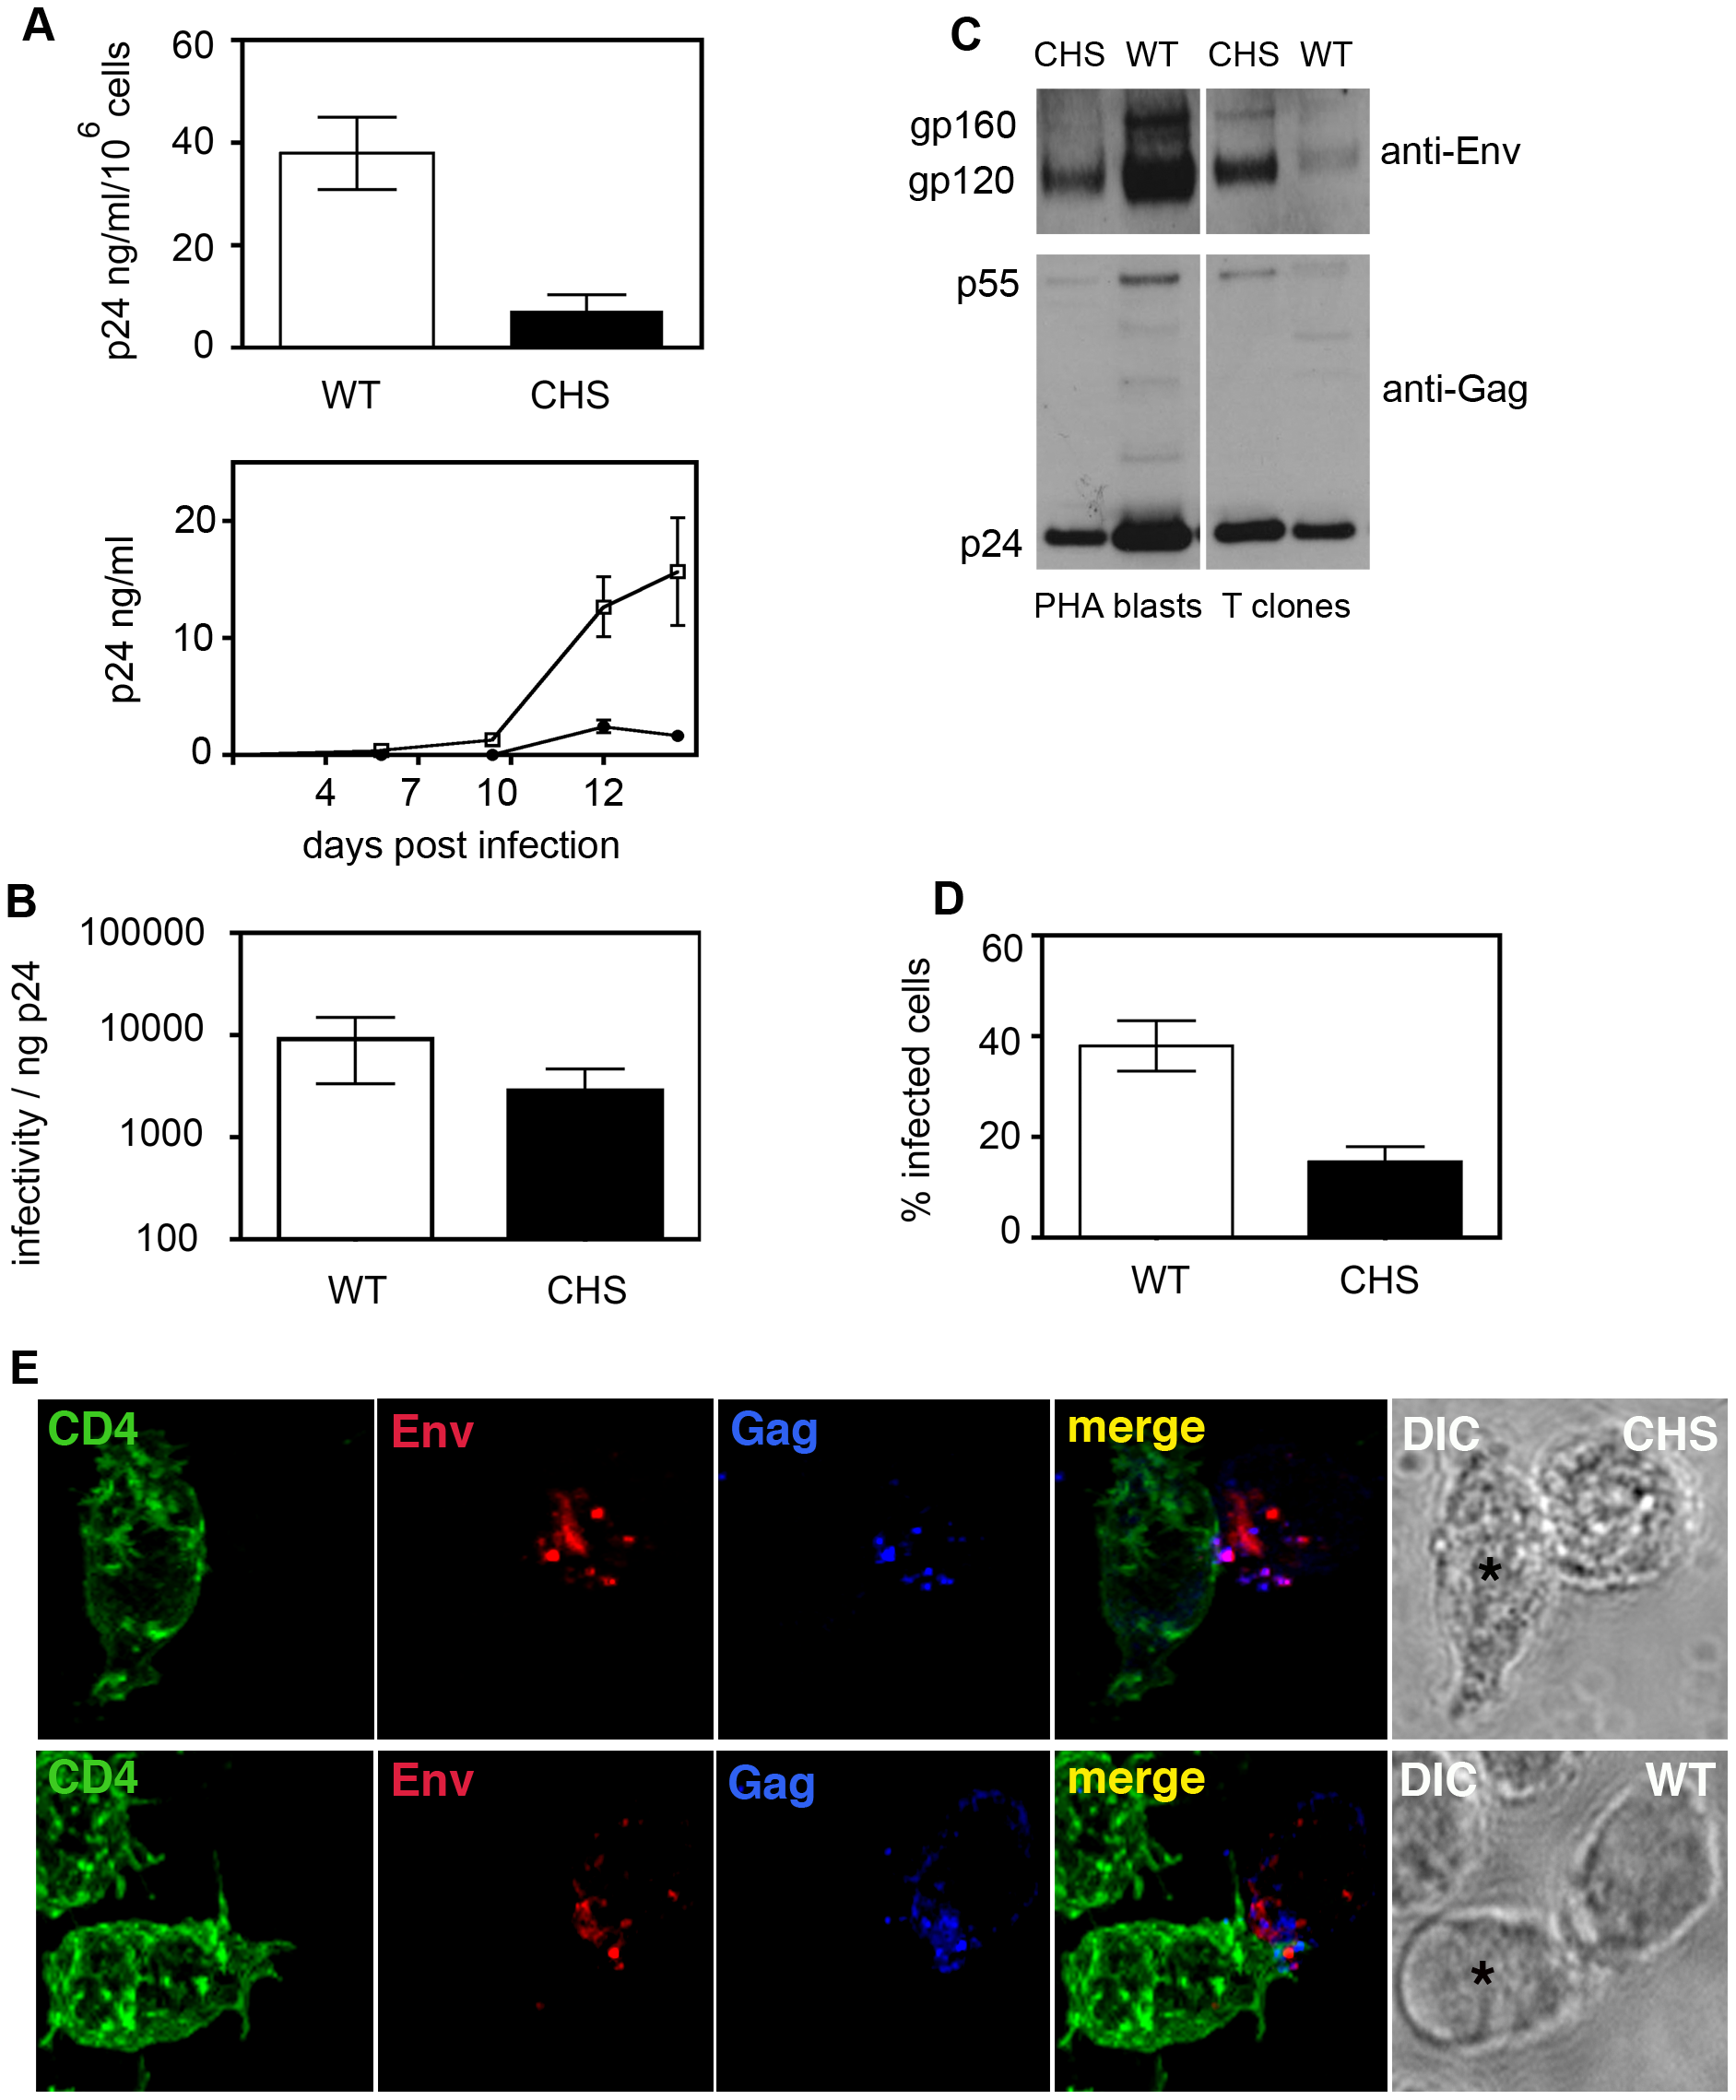 CHS CD4<sup>+</sup> T cells are less able to support HIV-1 replication in culture.